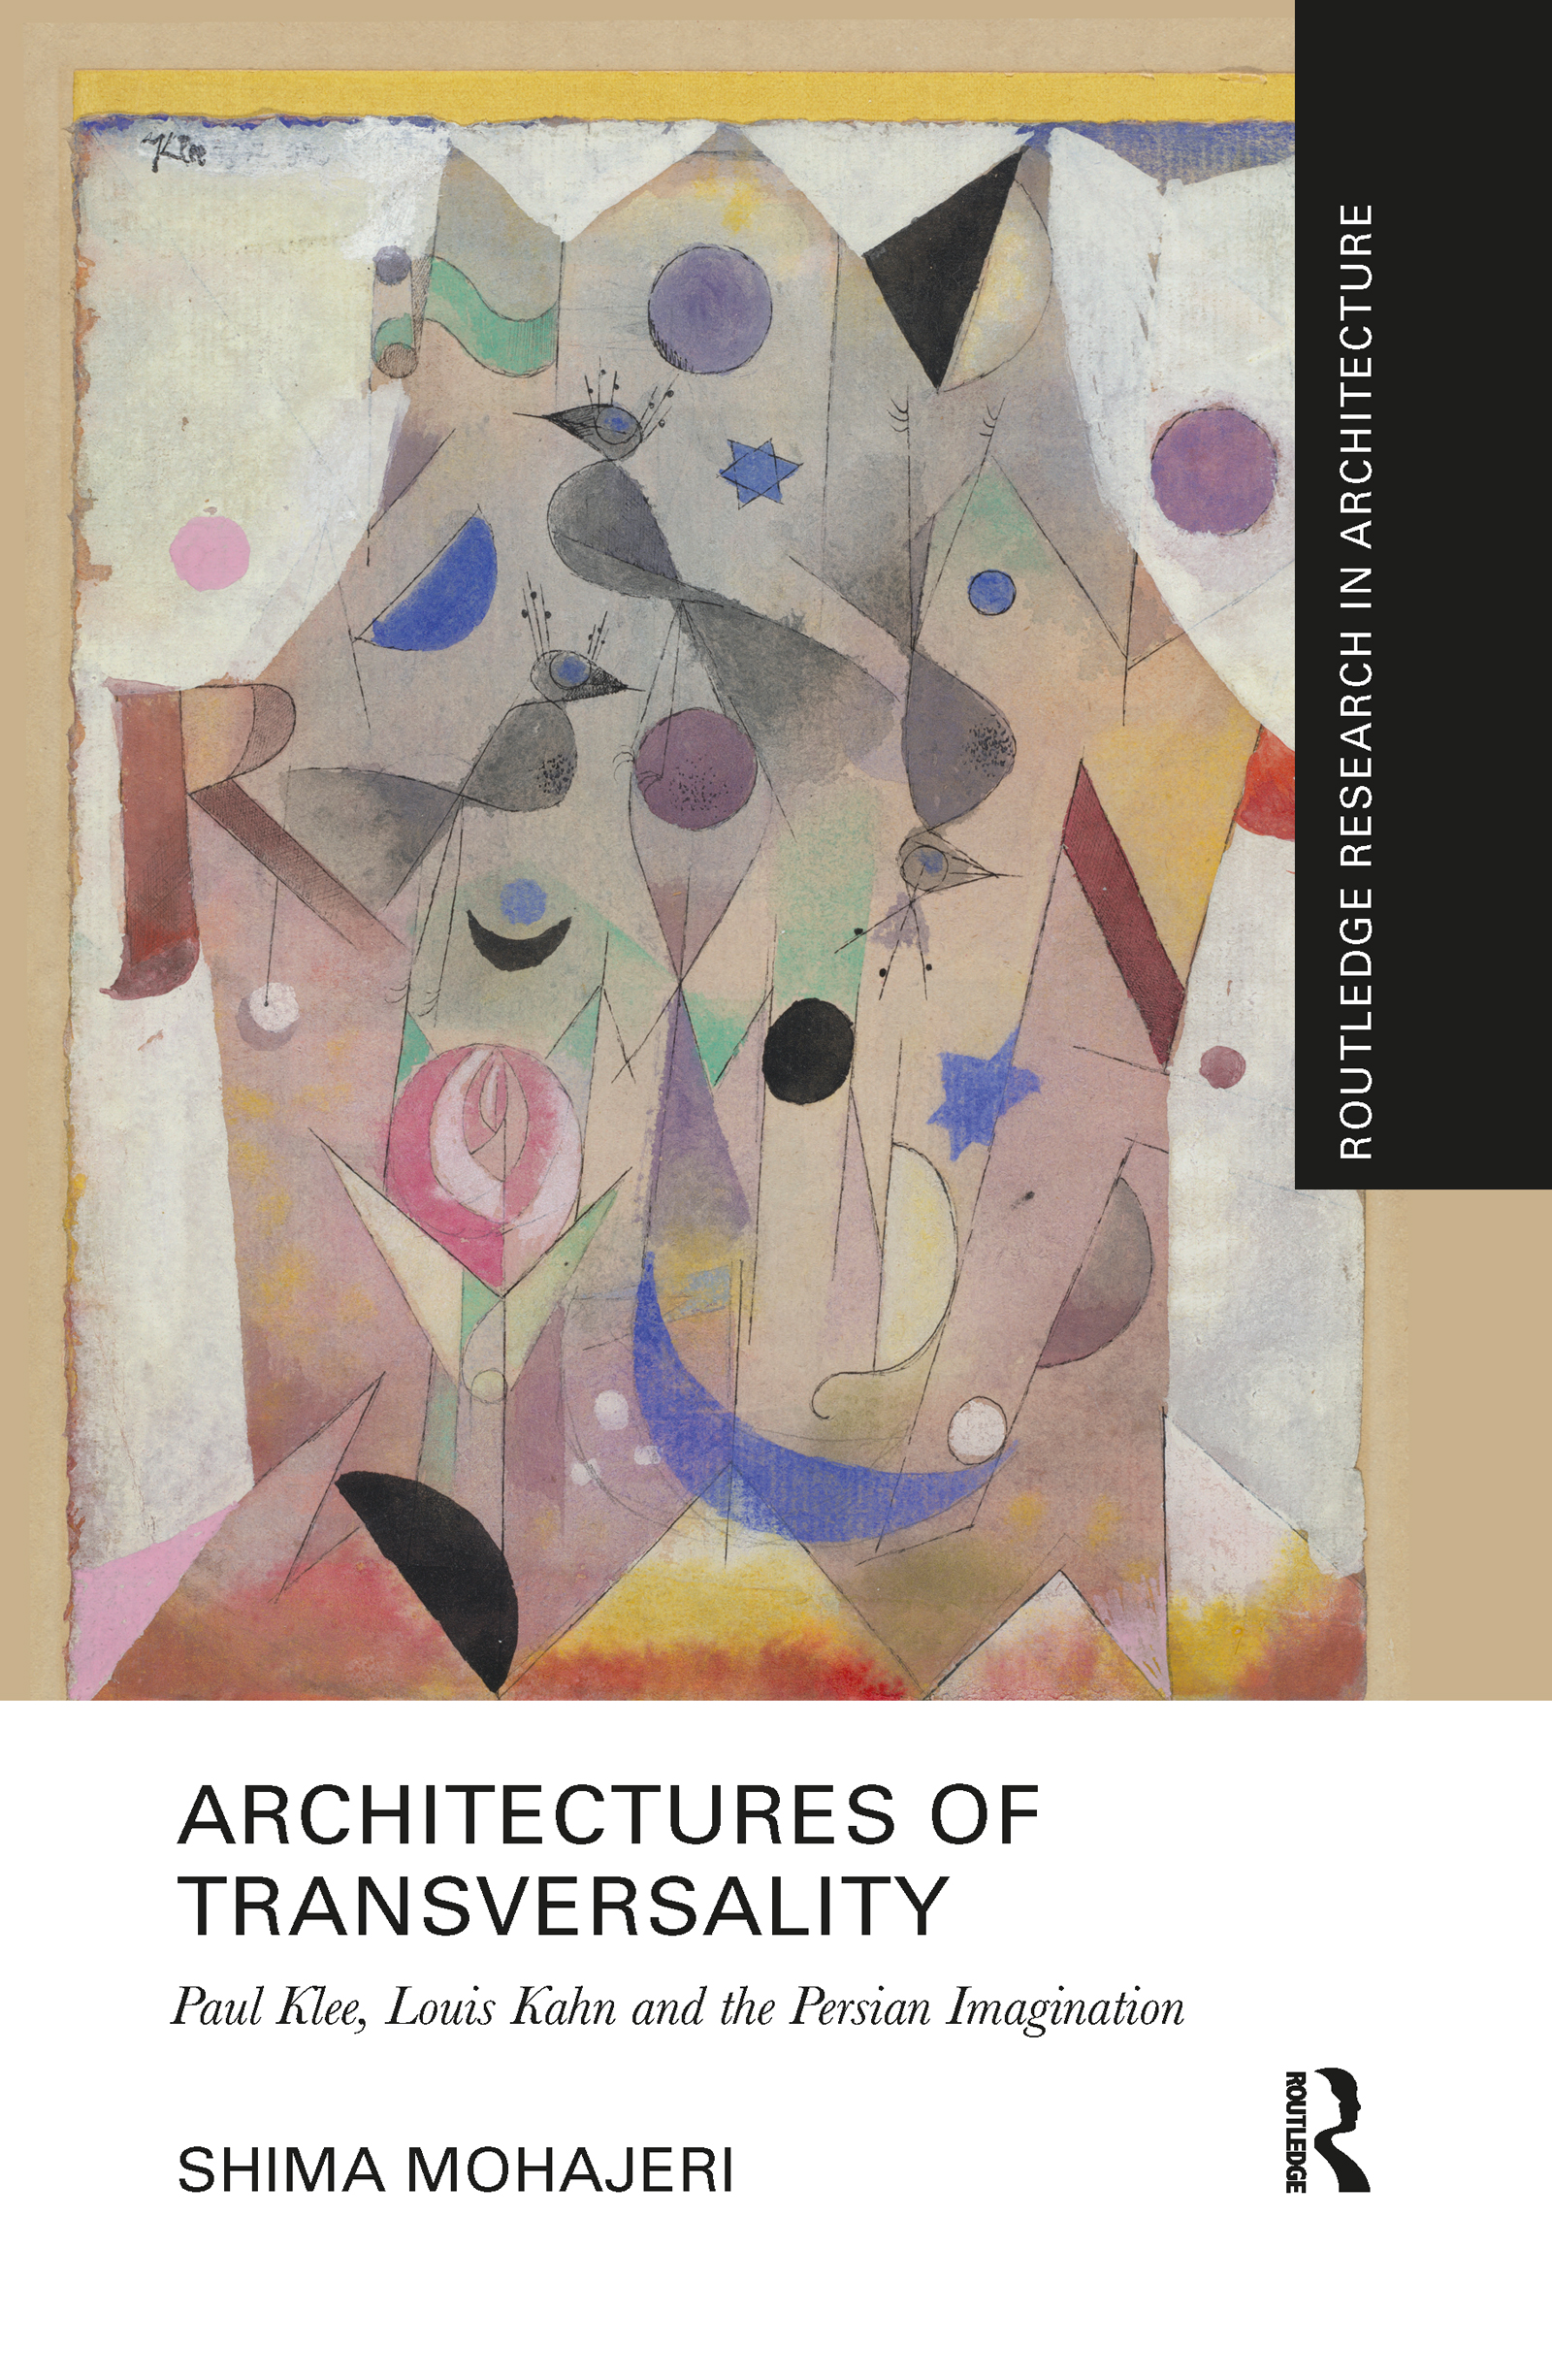 Architectures of Transversality